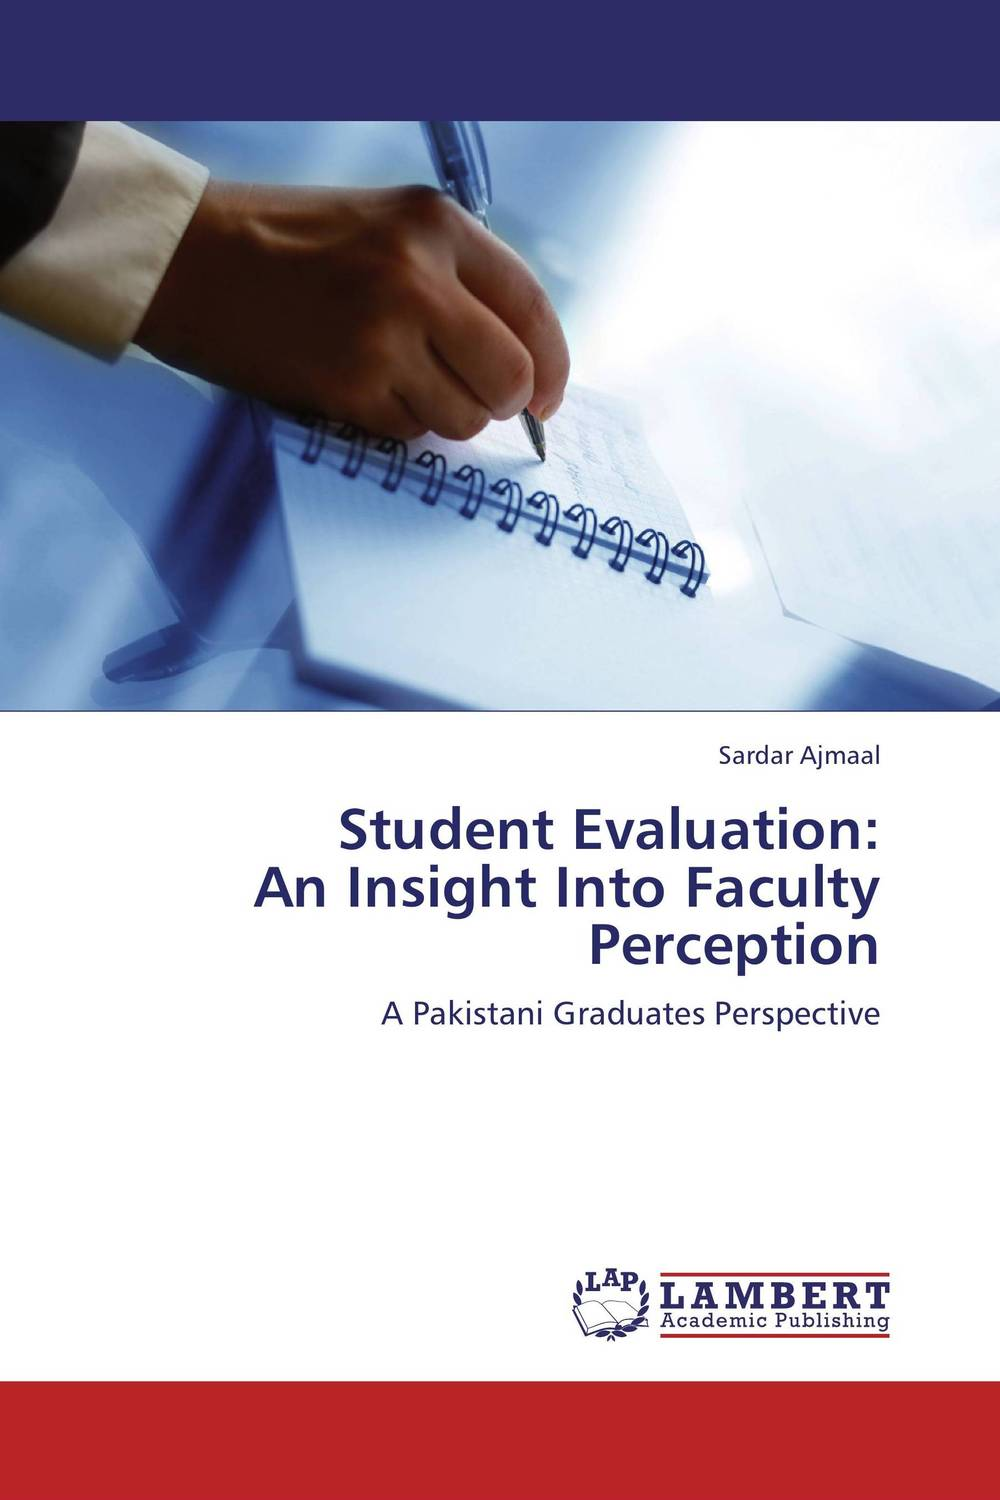 Student Evaluation: An Insight Into Faculty Perception